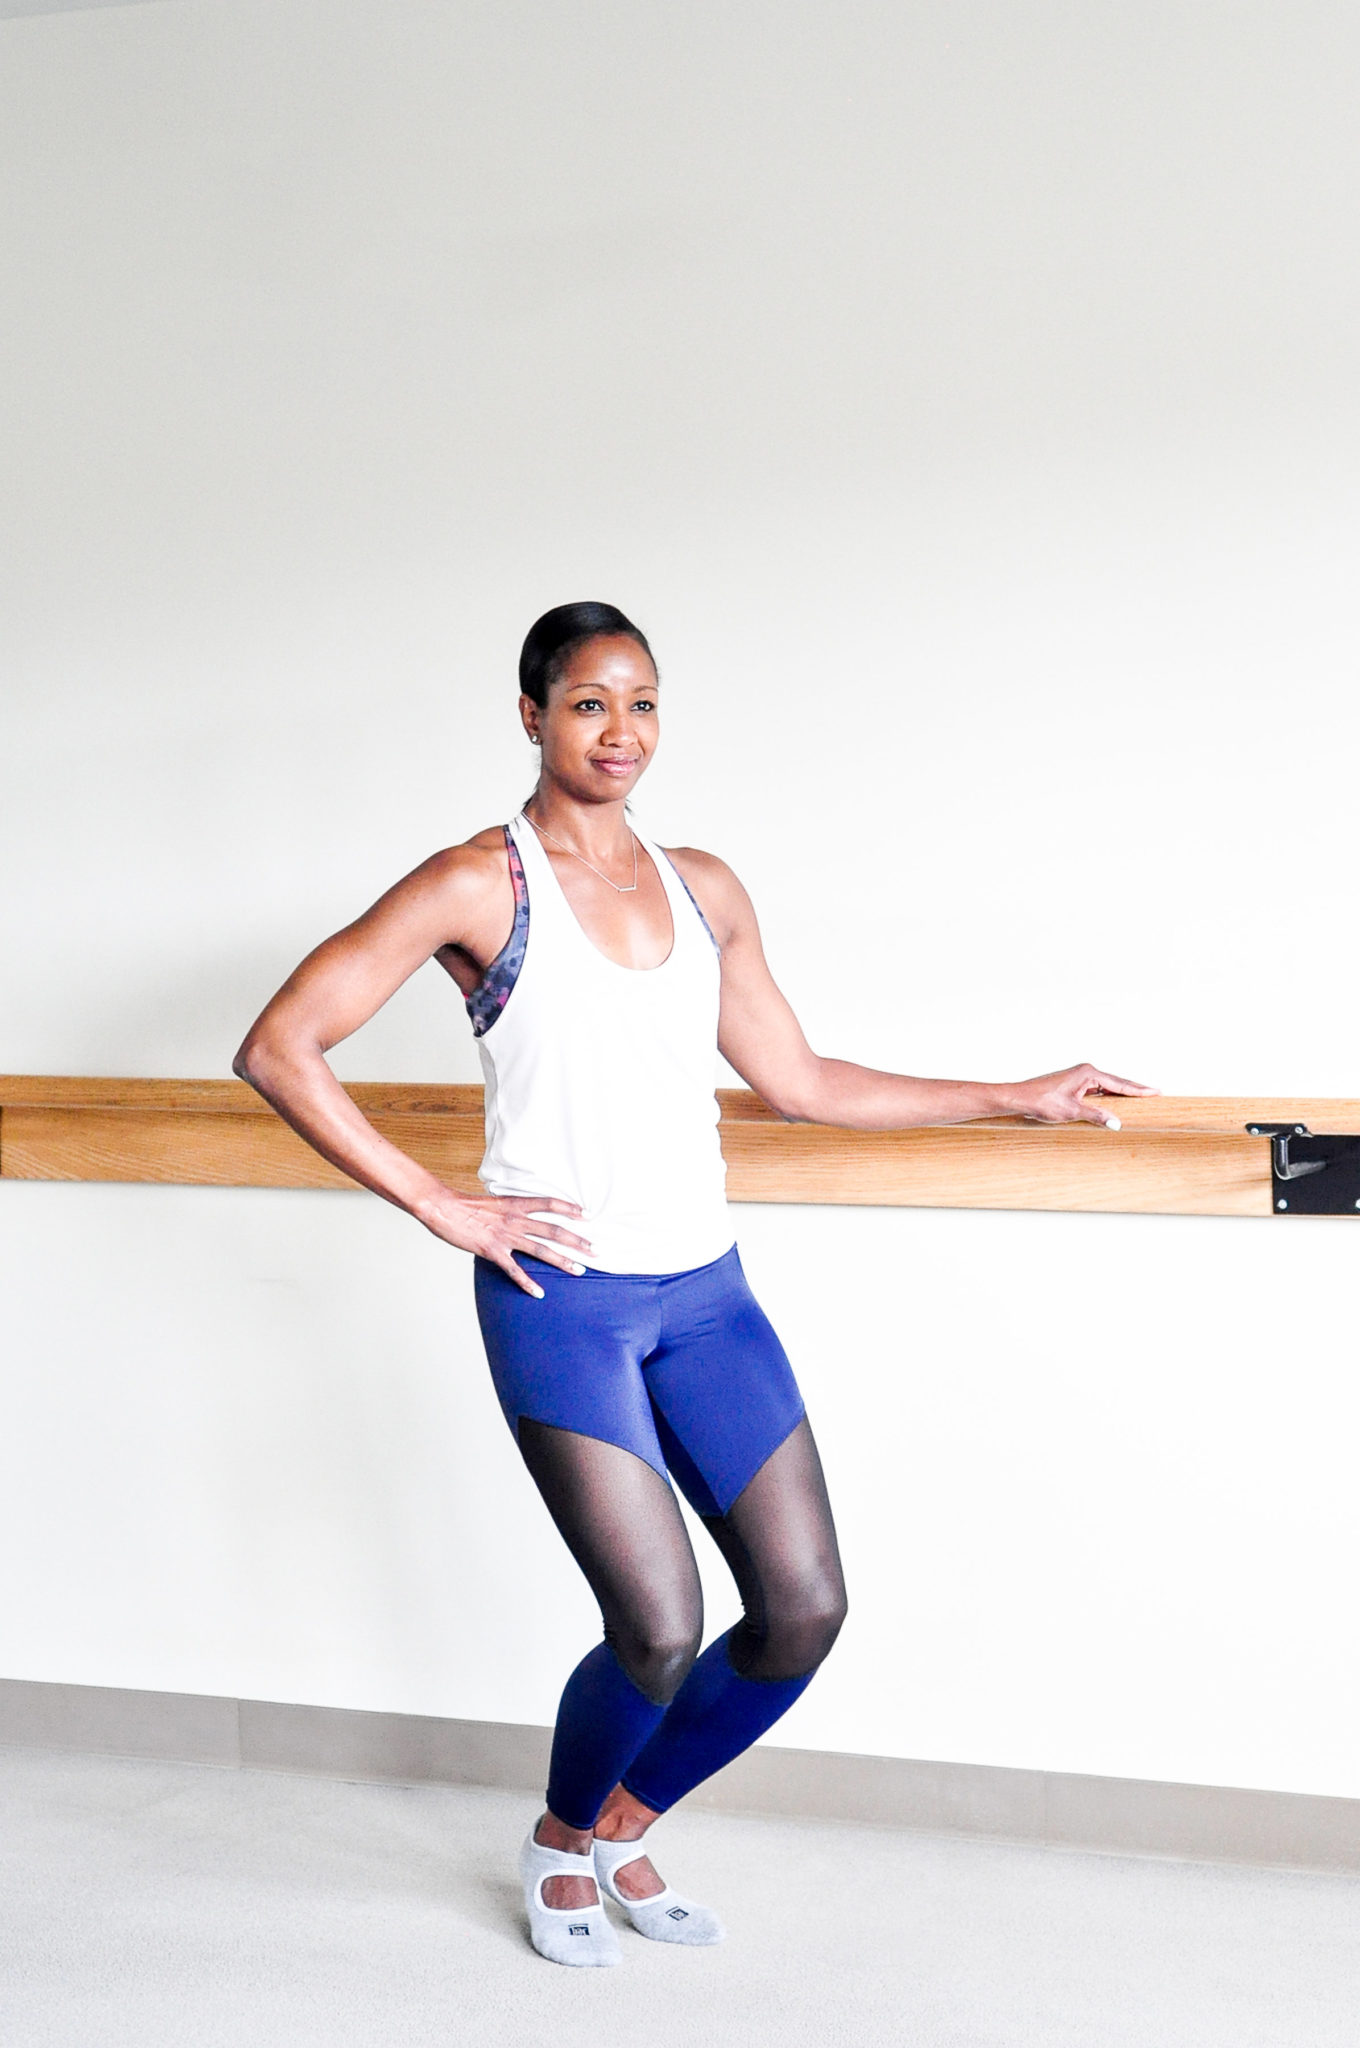 barre-bar method-quadriceps-thigh exercise